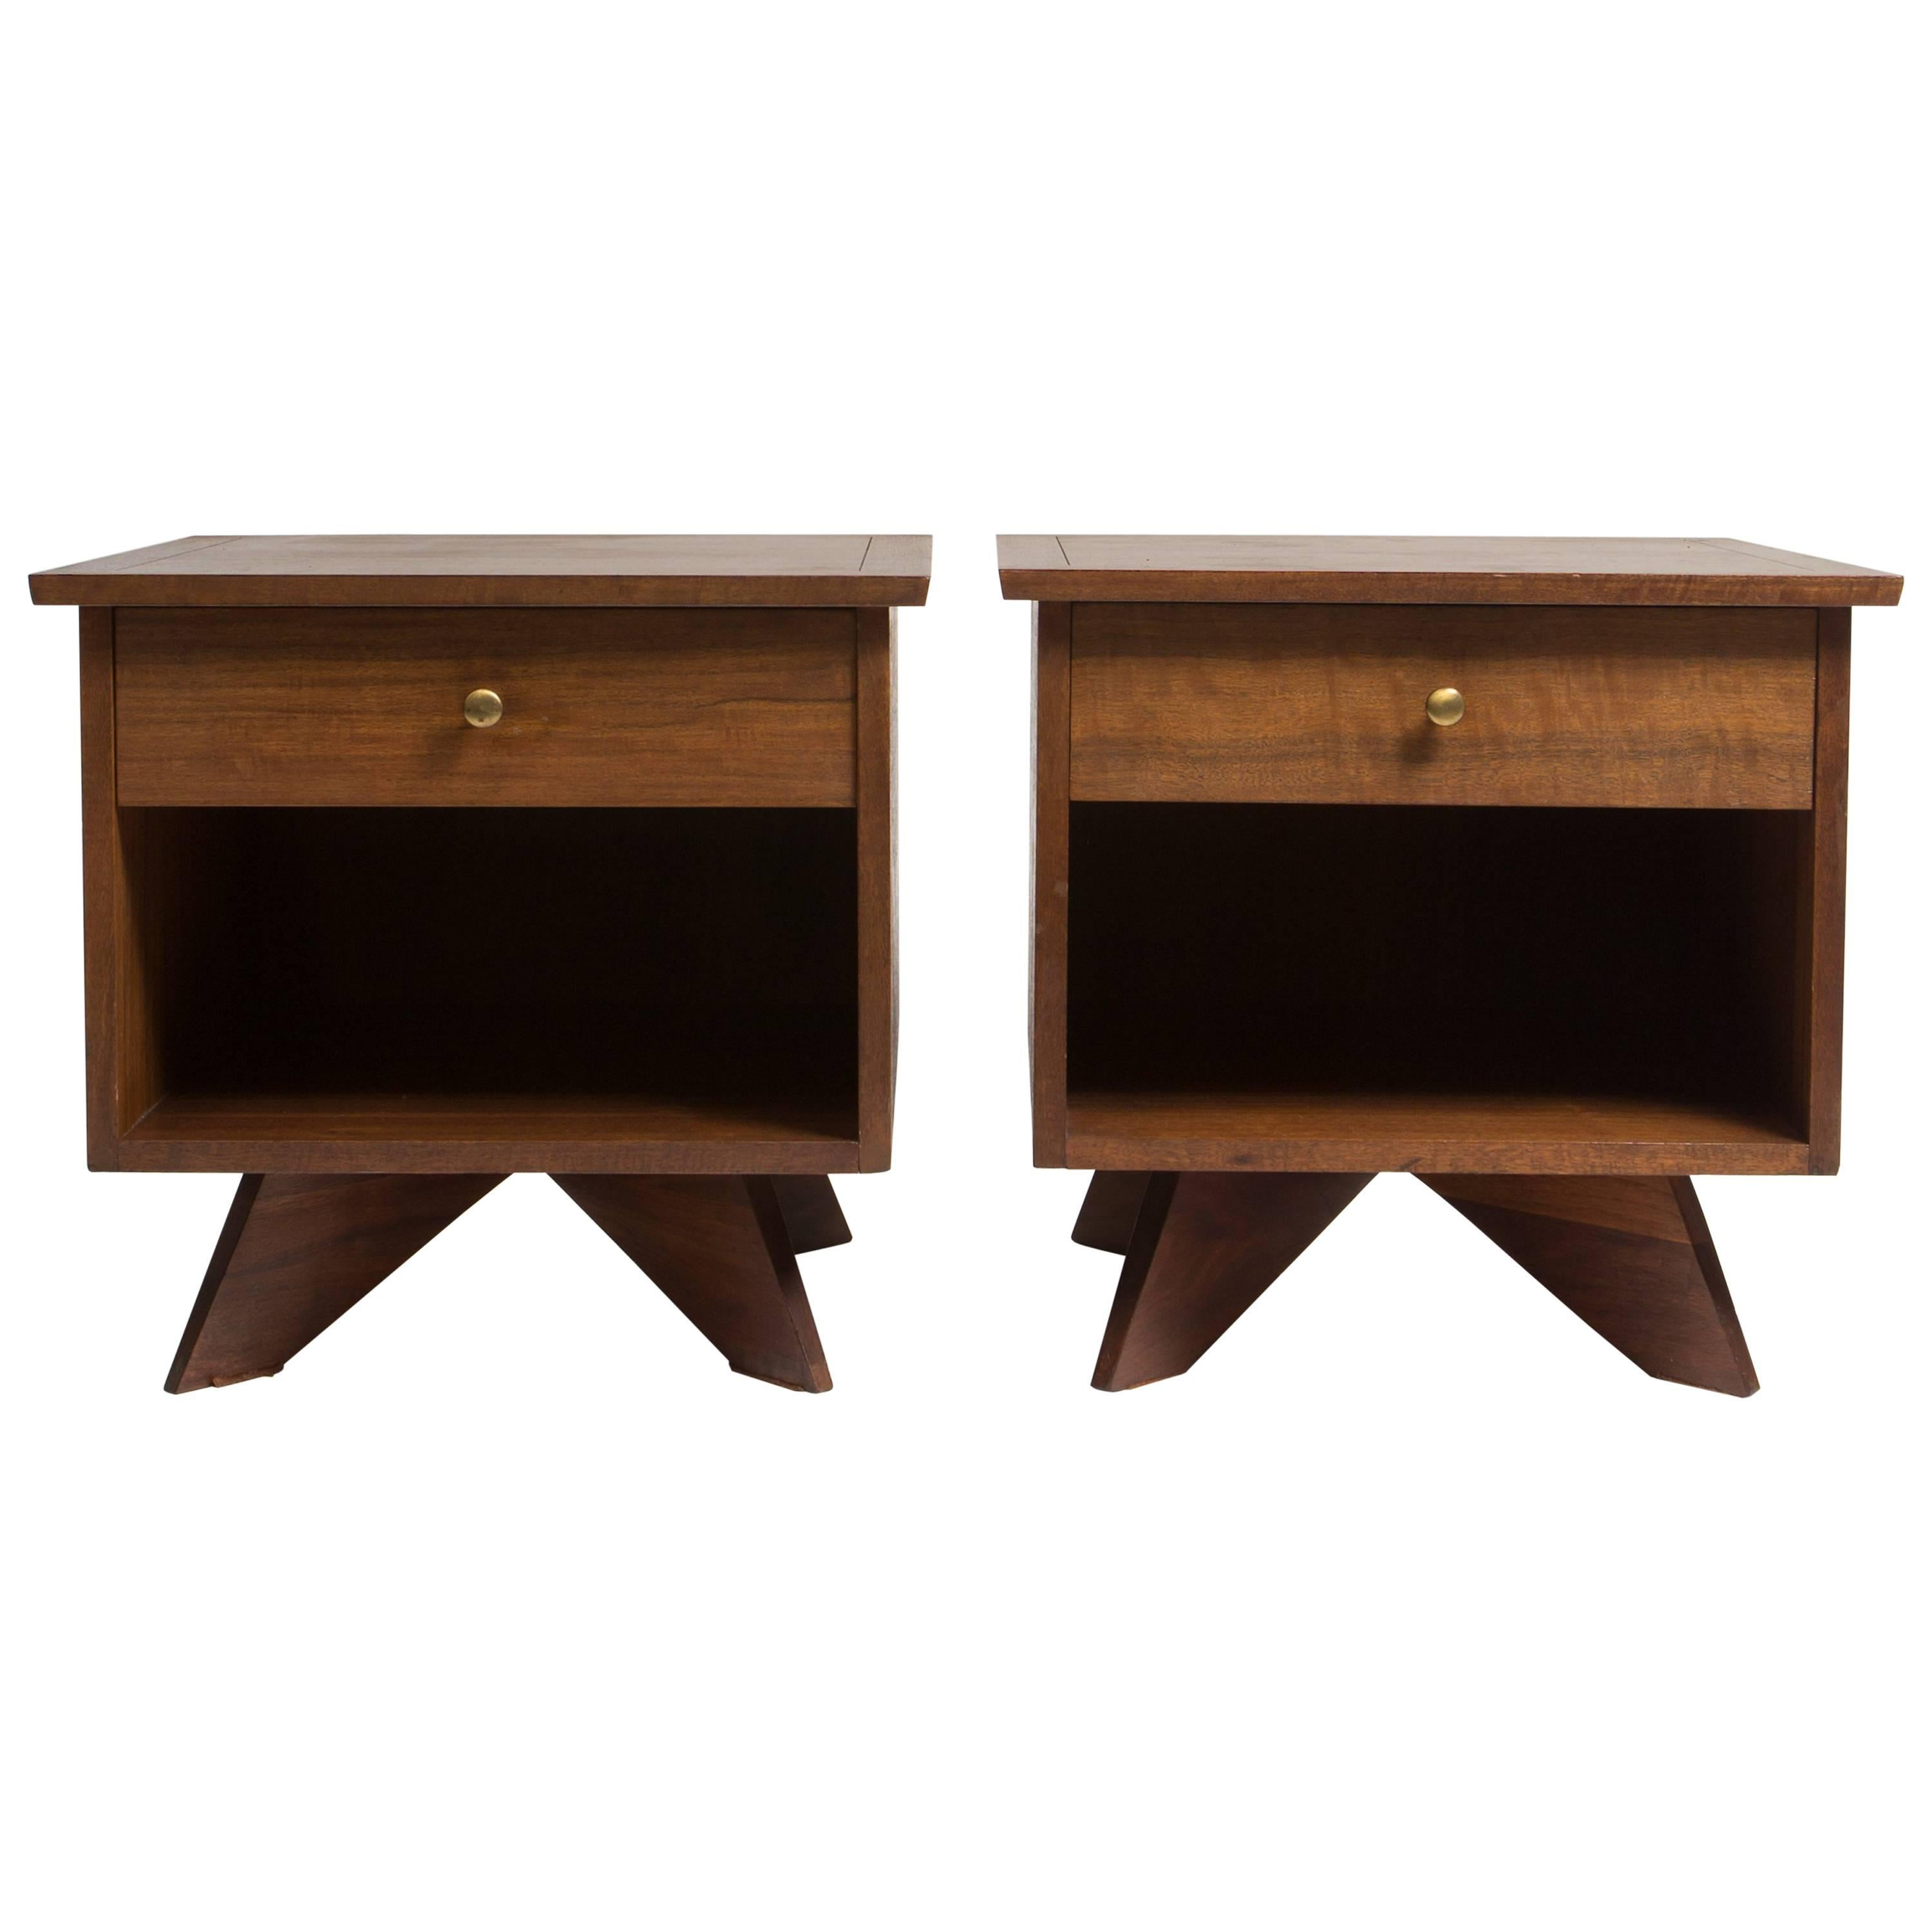 Pair Of George Nakashima Walnut Bedside Tables, Mfg. Widdicomb